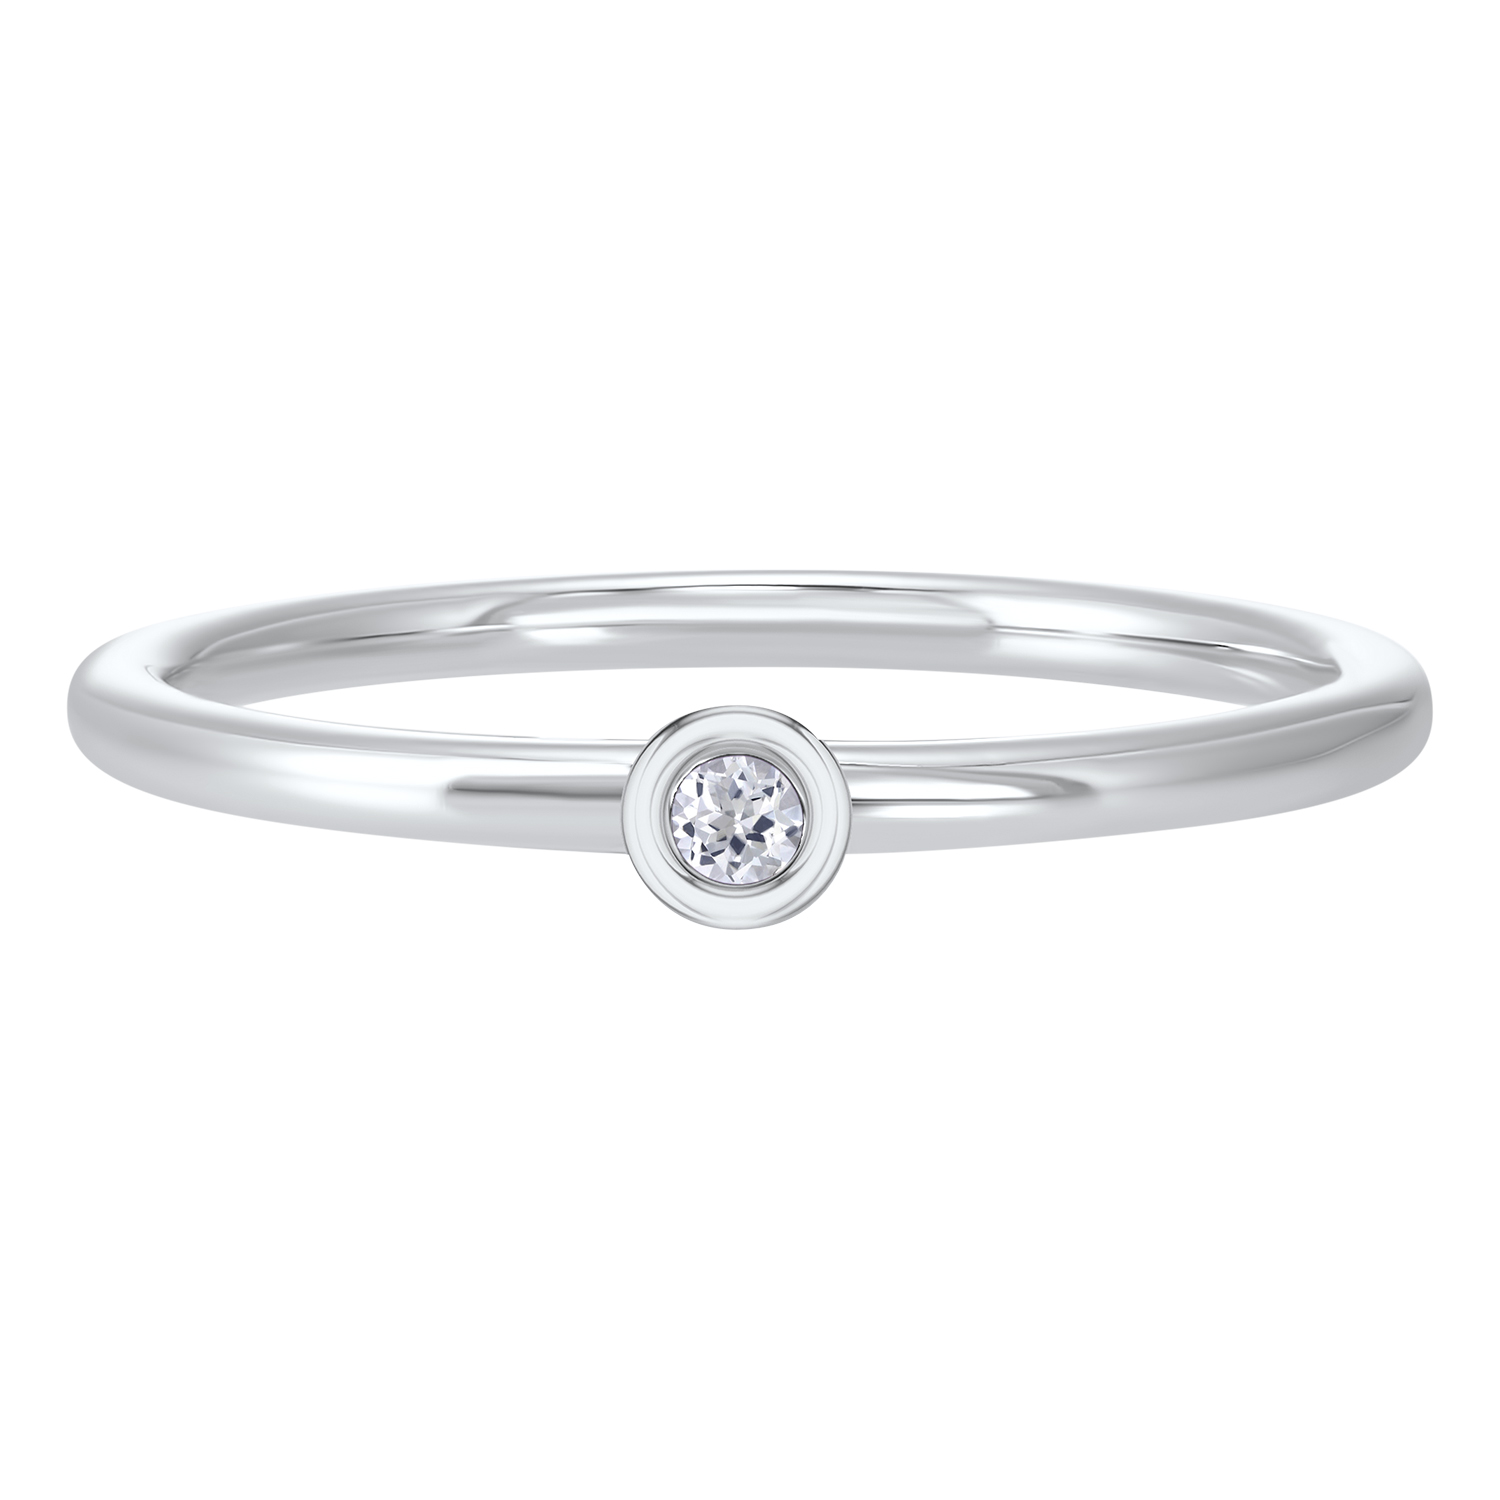 10K White Gold Stackable Bezel White Topaz Band Moseley Diamond Showcase Inc Columbia, SC